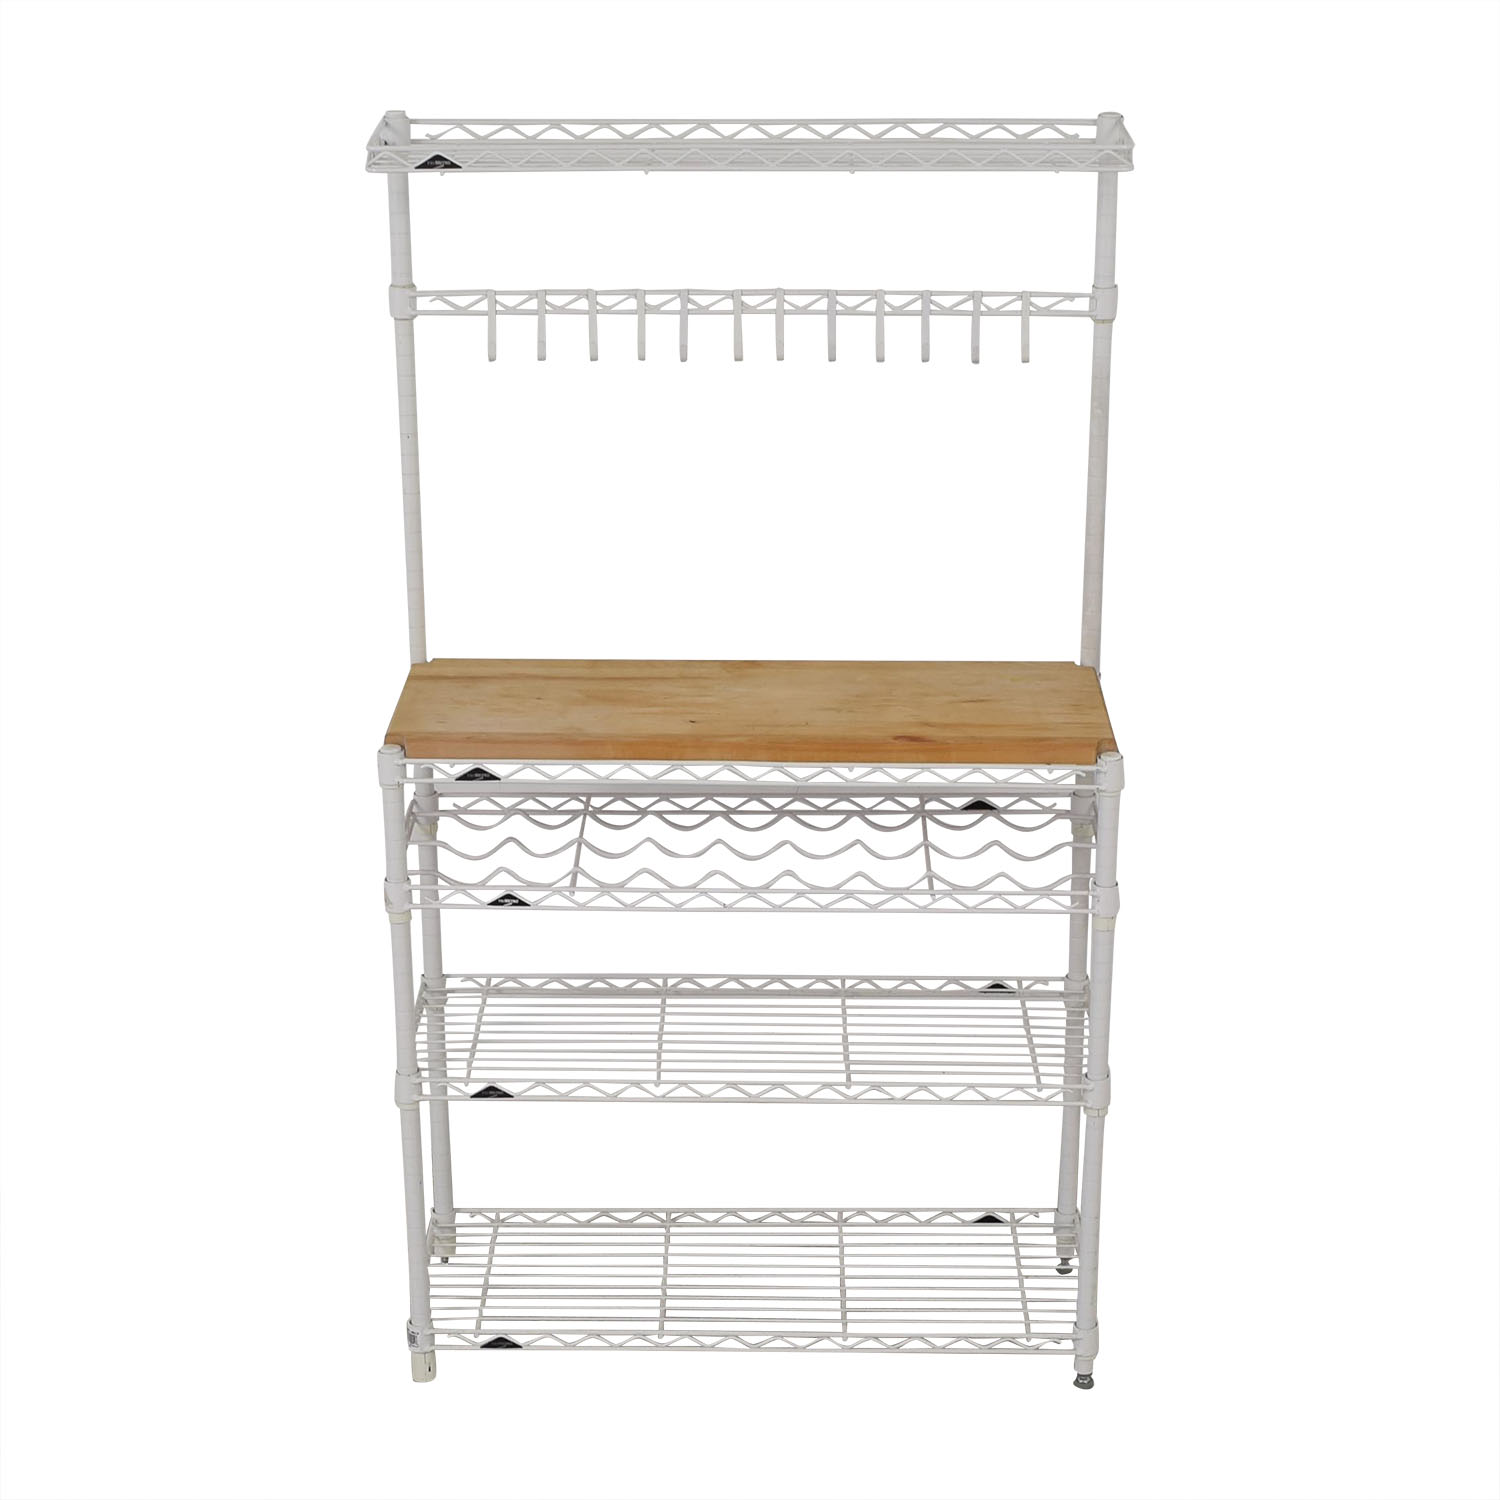 The Container Store The Container Store InterMetro Baker's Rack dimensions